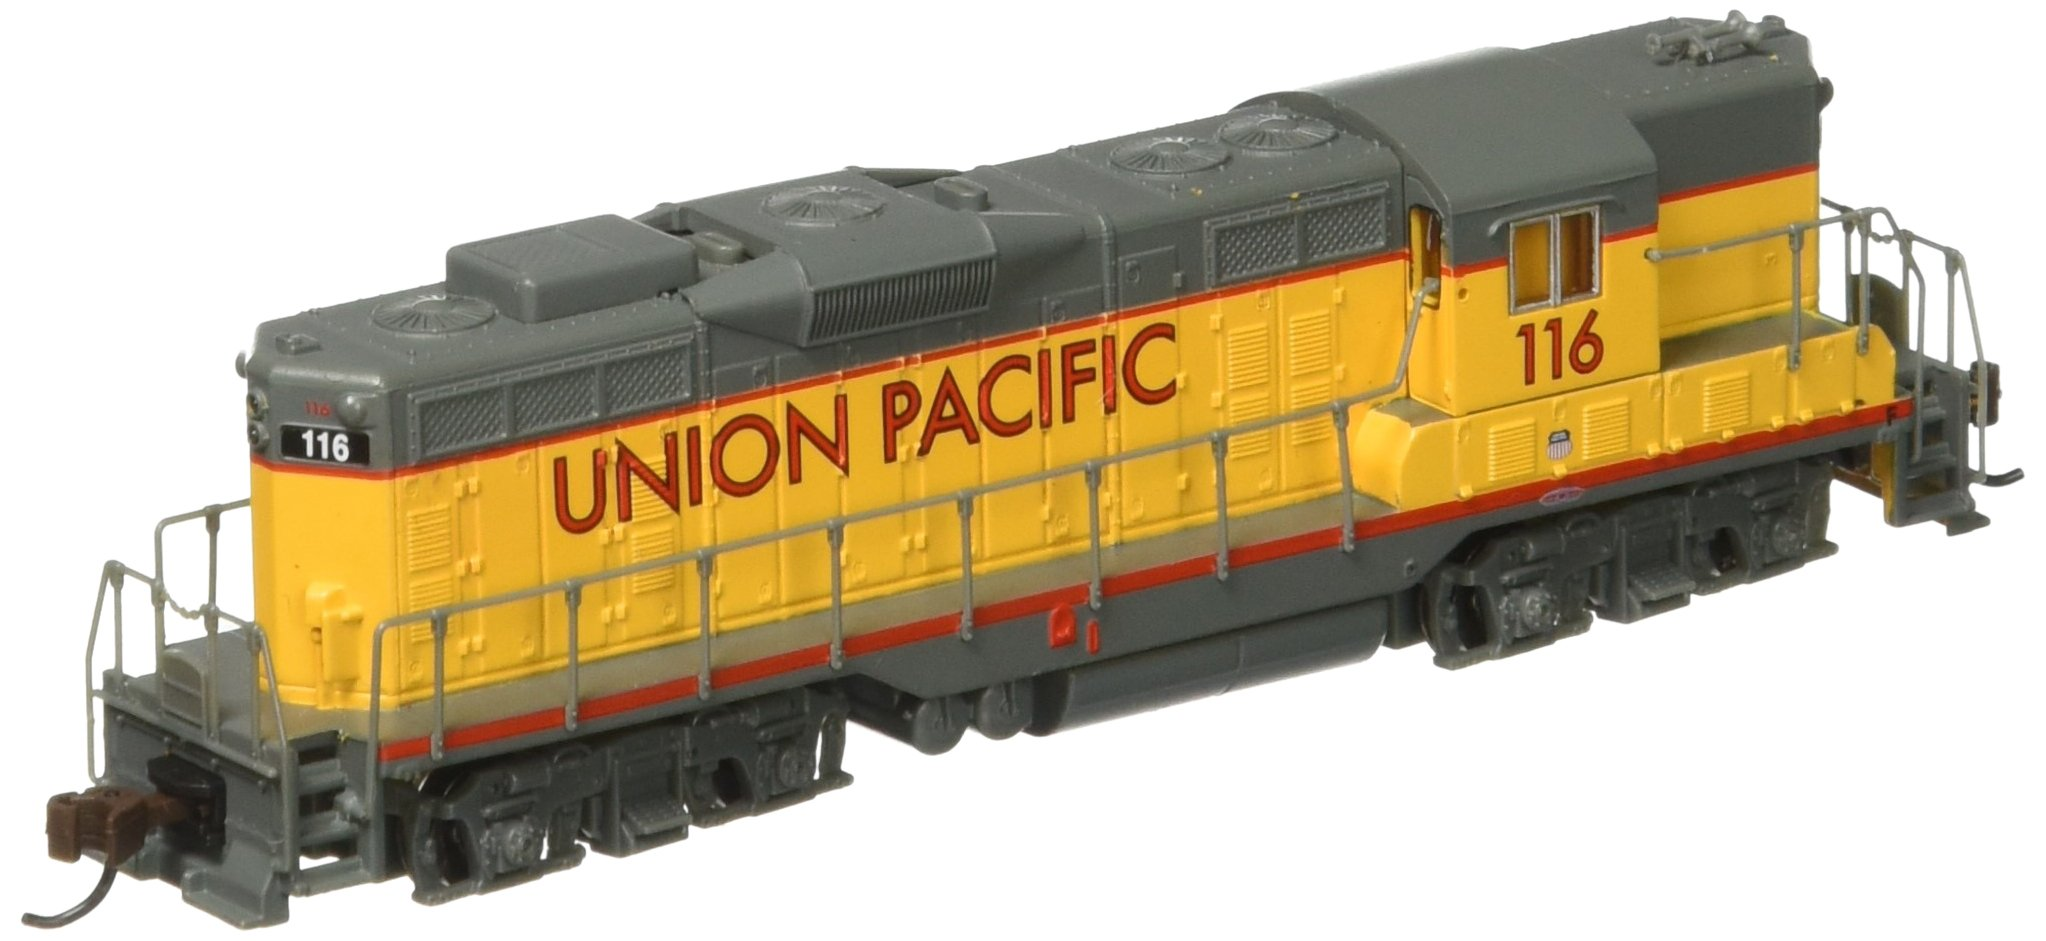 Best Rated In Hobby Train Locomotives Helpful Customer Reviews N Scale Dcc Wiring Diagrams Bachmann Industries Emd Gp7 Diesel Locomotive Union Pacific 116 With Dynamic Brakes